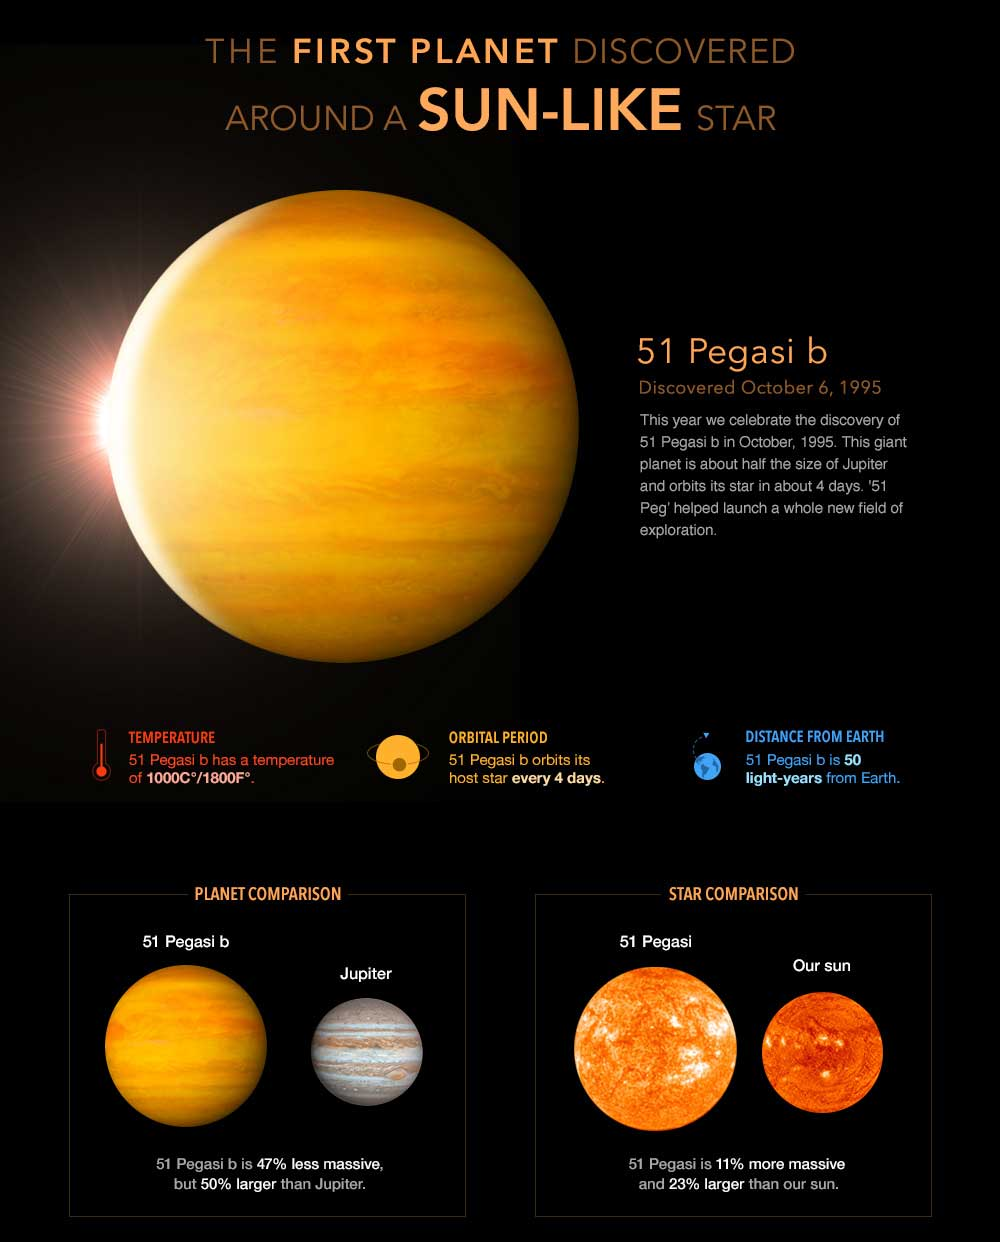 Infographic showing 51 Peg and its temperature and distance to its star compared to our Sun. It's 1,000 to 1,800 degrees F.